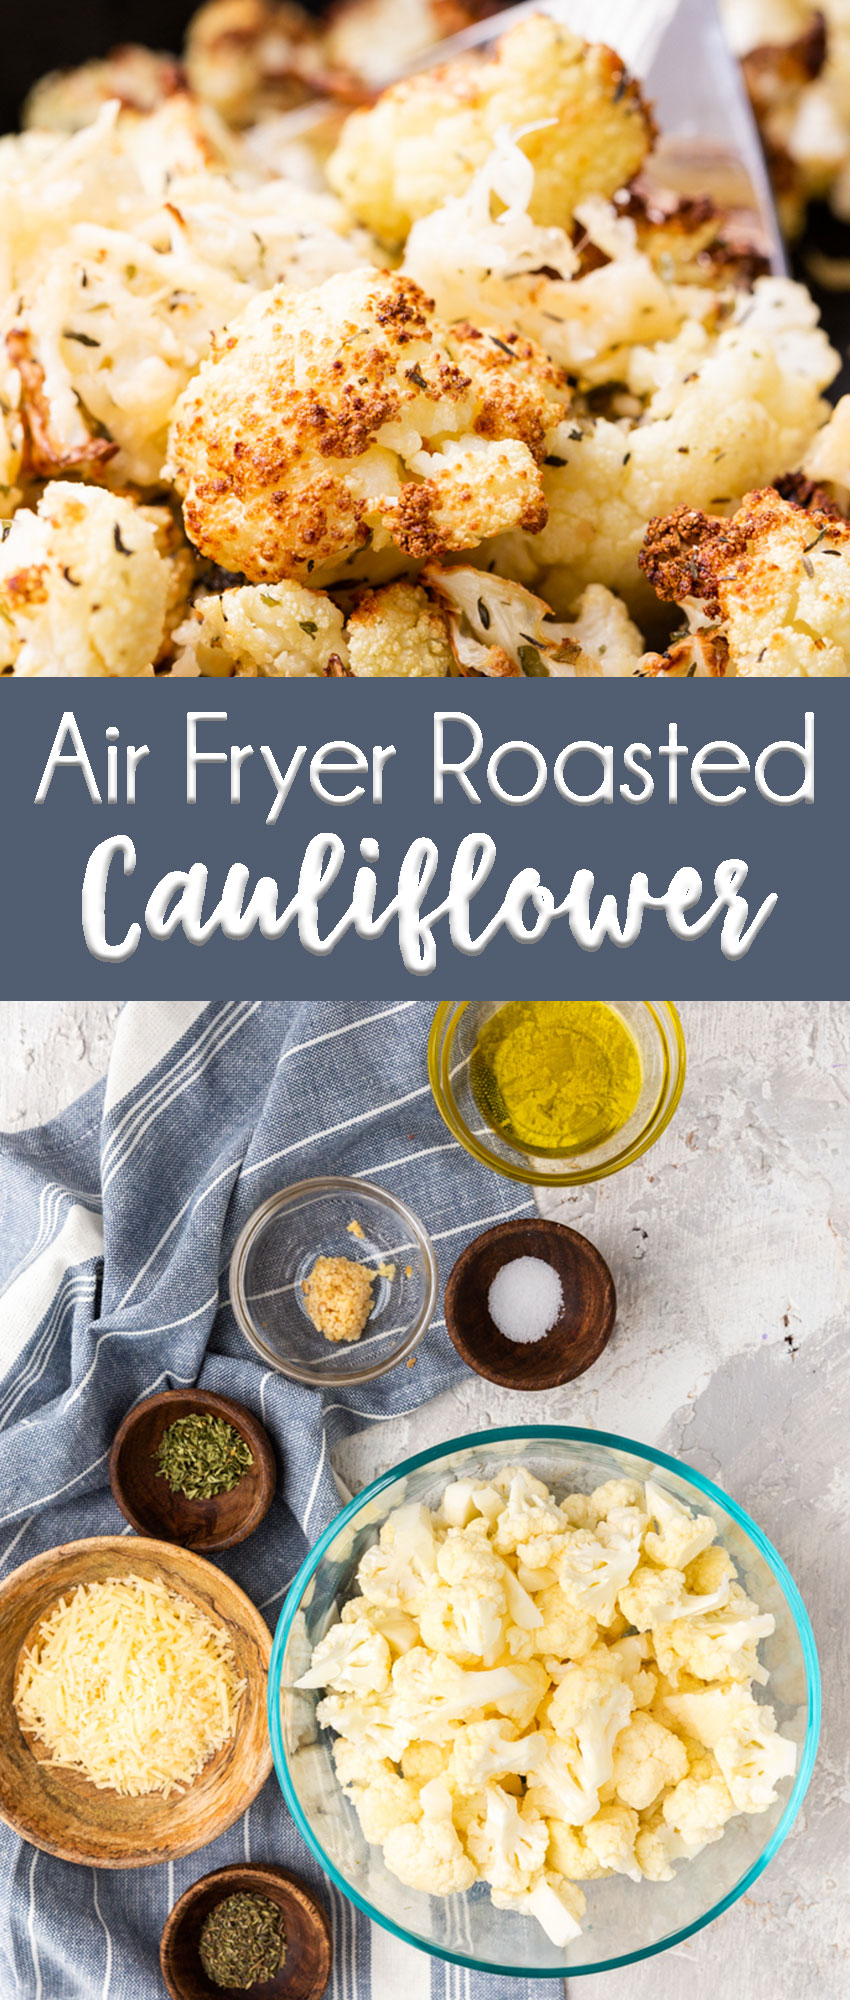 Deliciously crispy, but fork tender cauliflower roasted in an air fryer